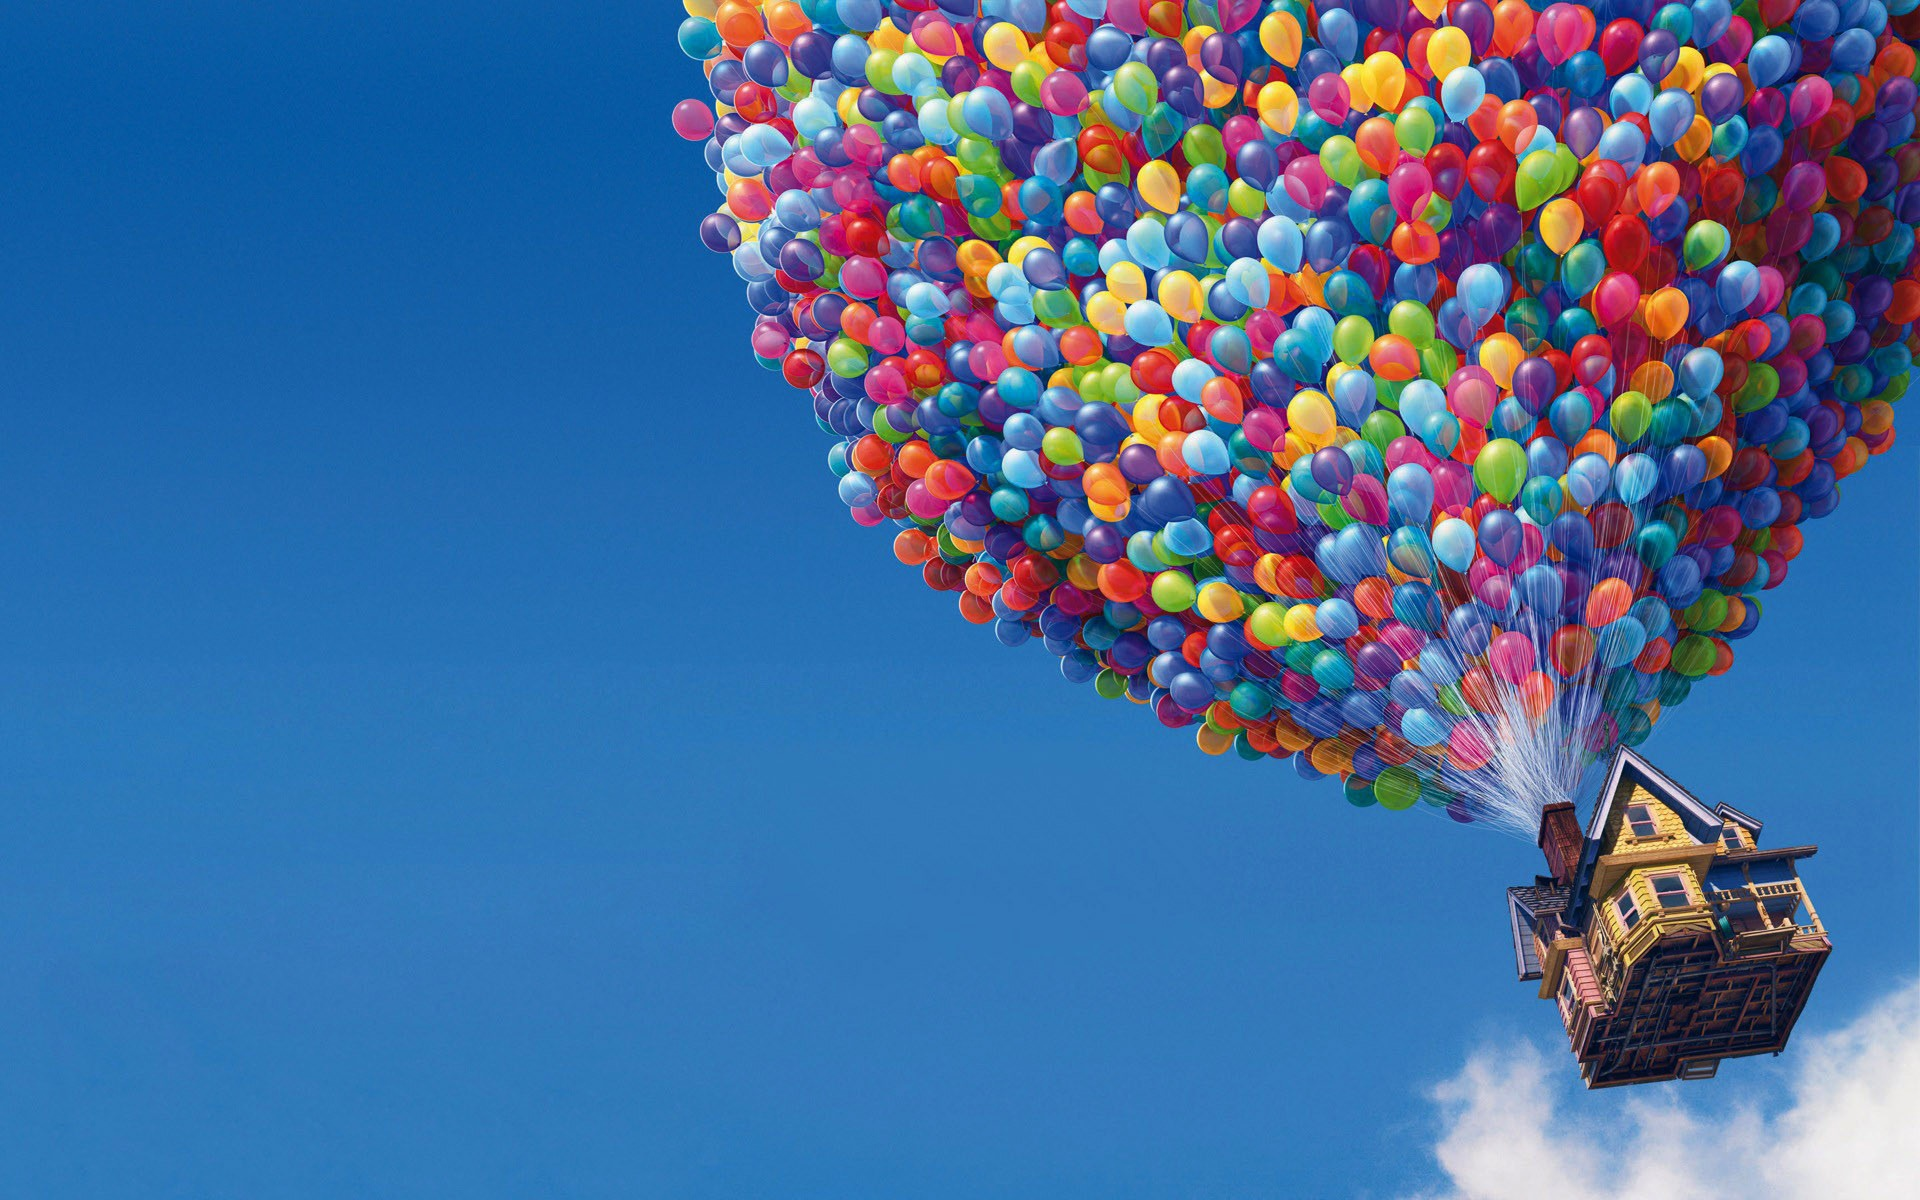 Balloon wallpapers for free download about 25 wallpapers